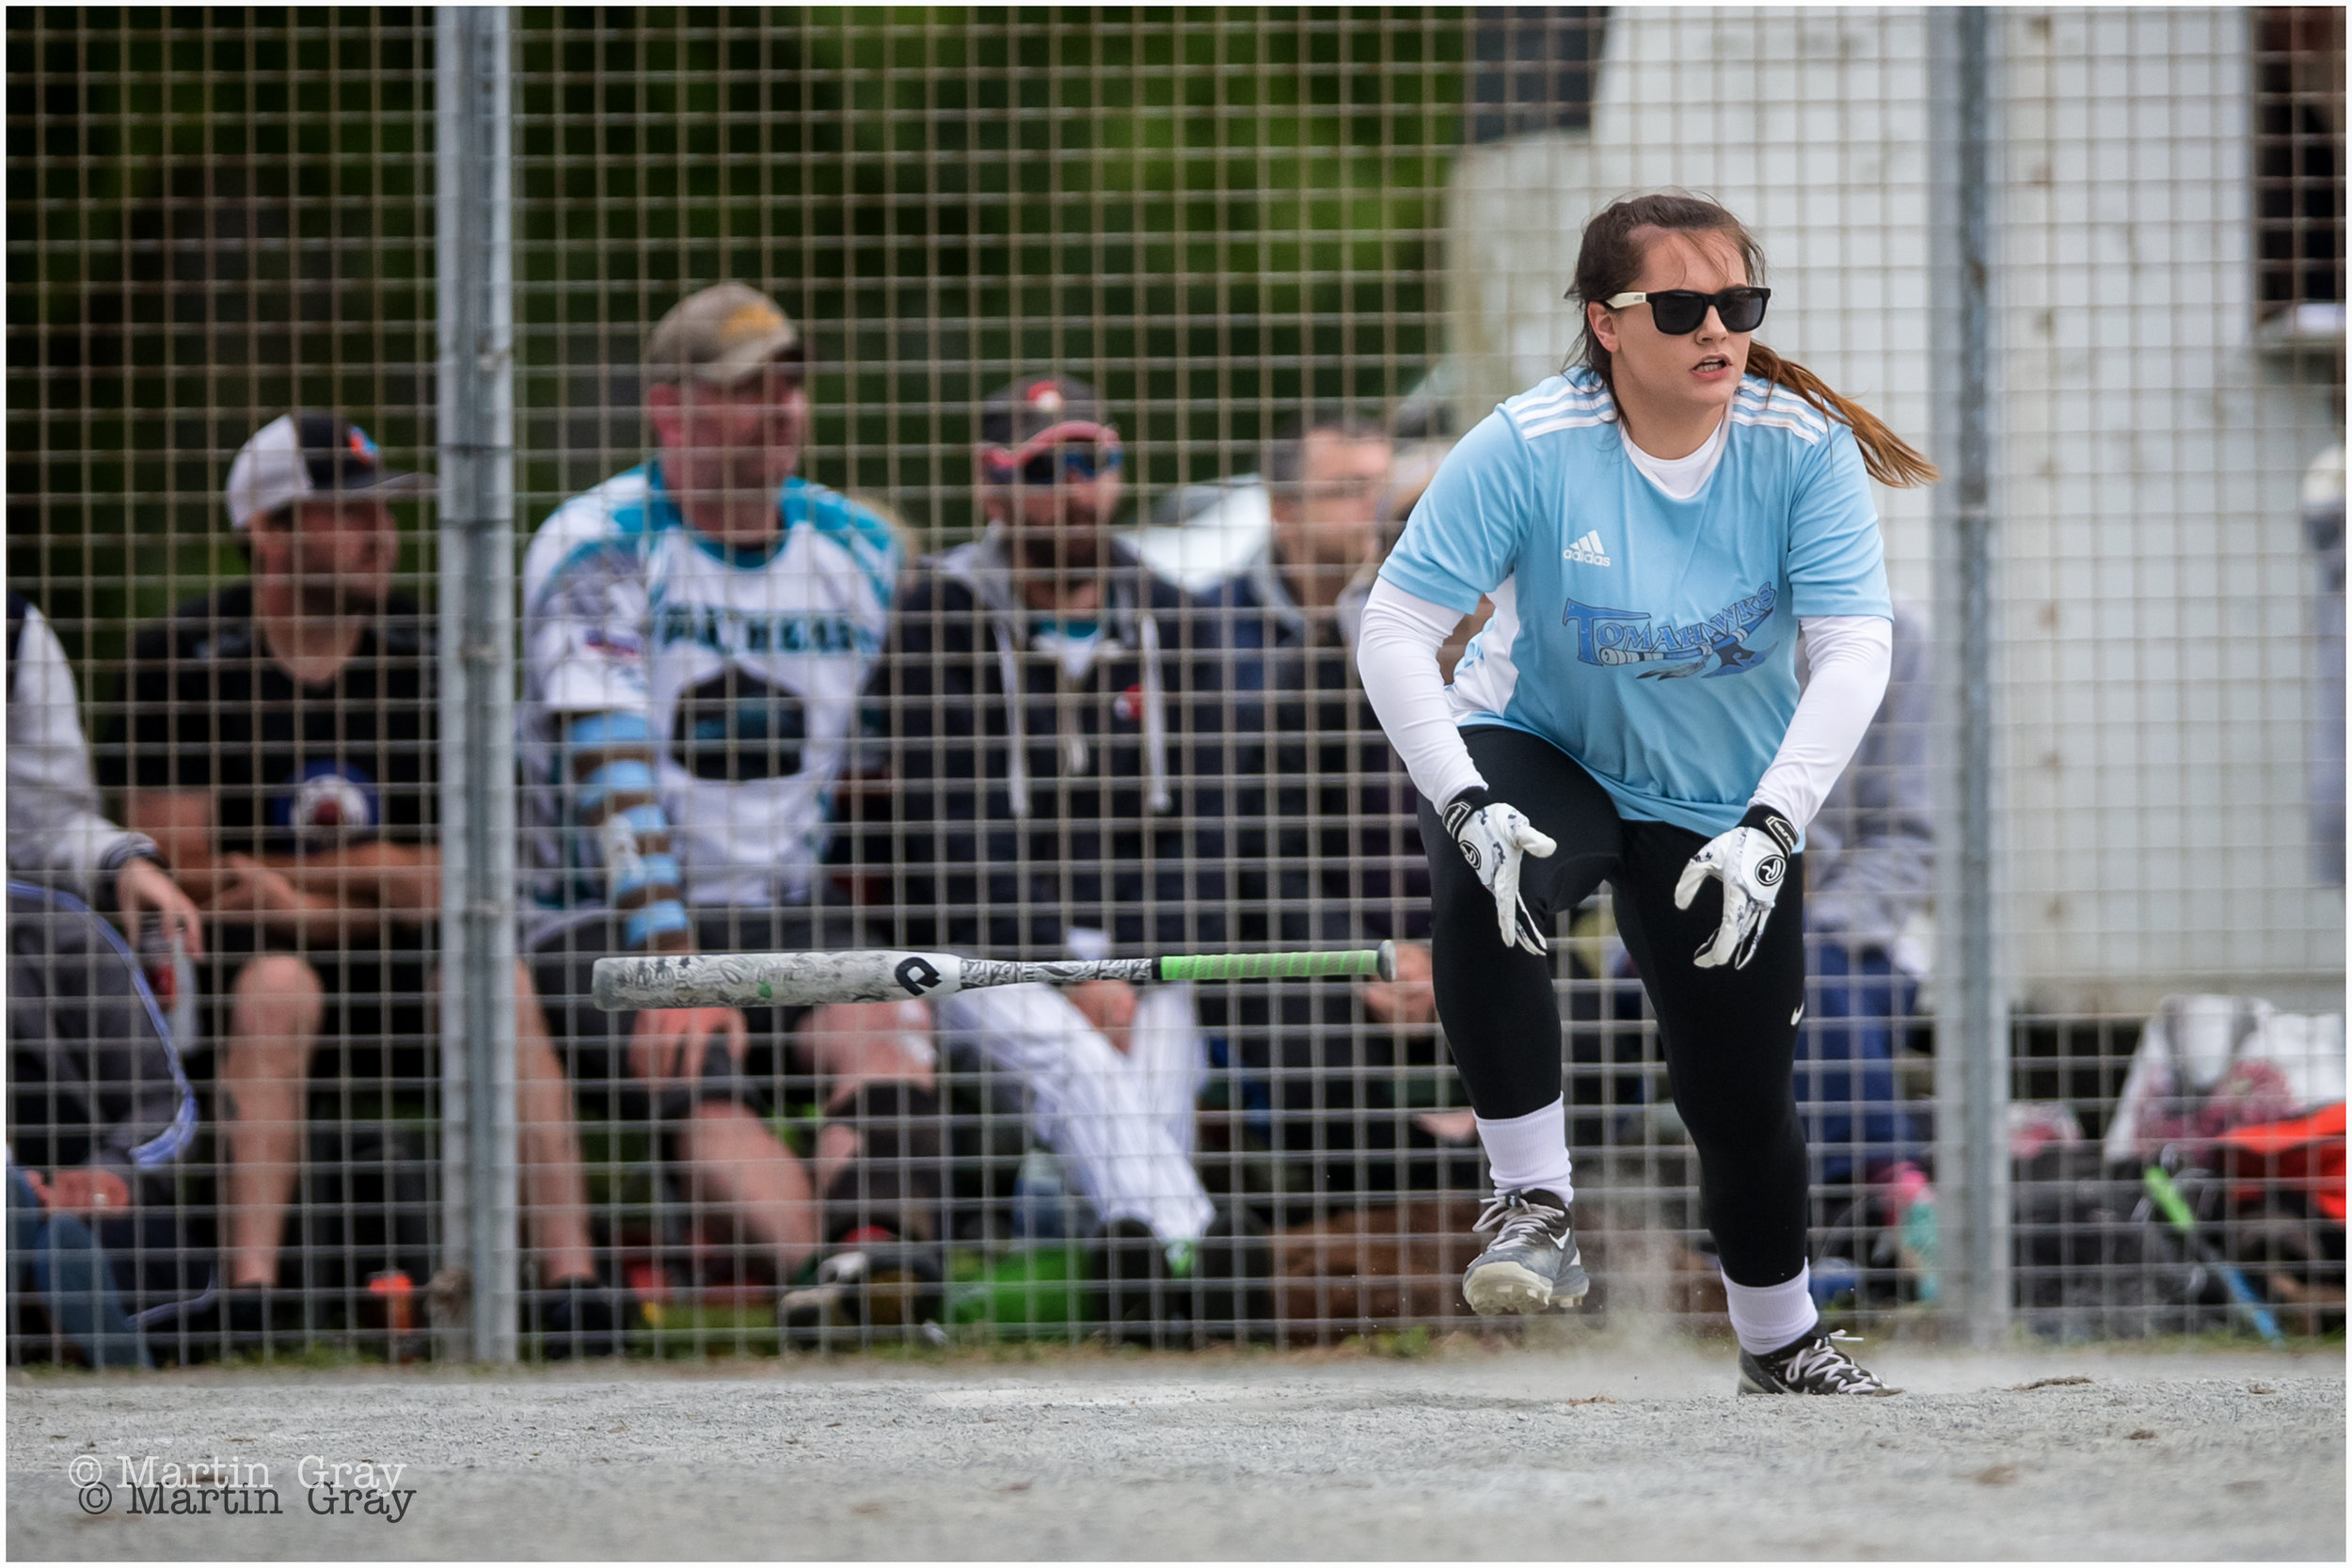 Guernsey Softball Association co-ed Slowpitch Tournament 2019 - A gallery of a few of Sunday's games… Enjoy!